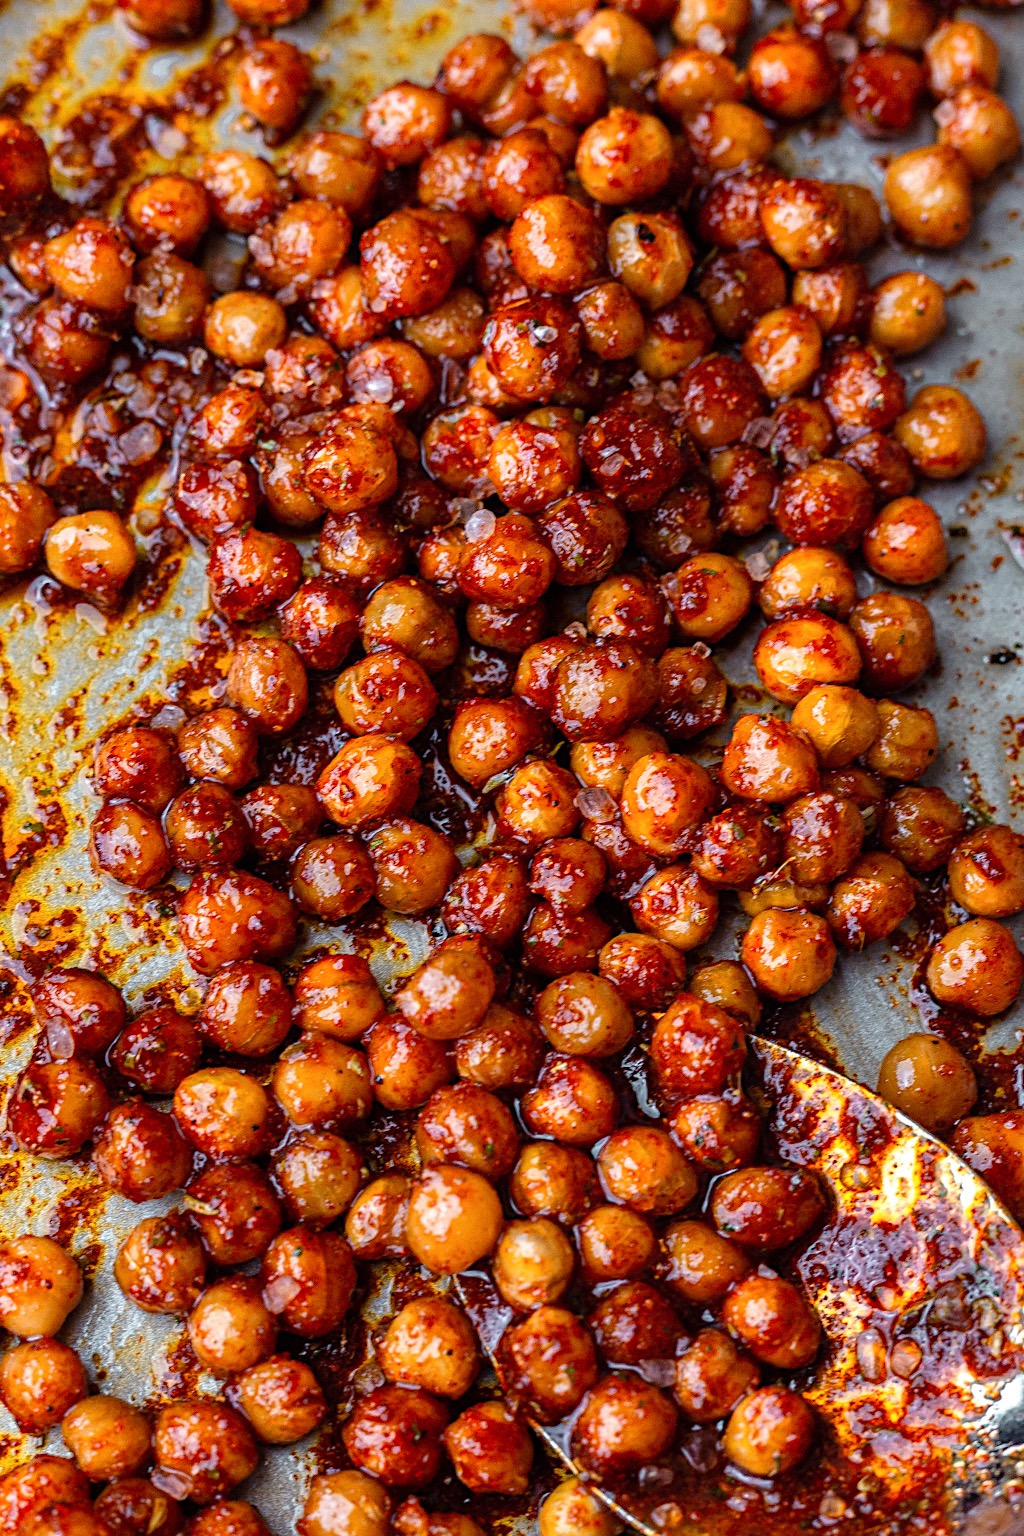 Vegan Crispy Smoky Chickpeas #chickpea #roasted #smoky #bacon #recipe